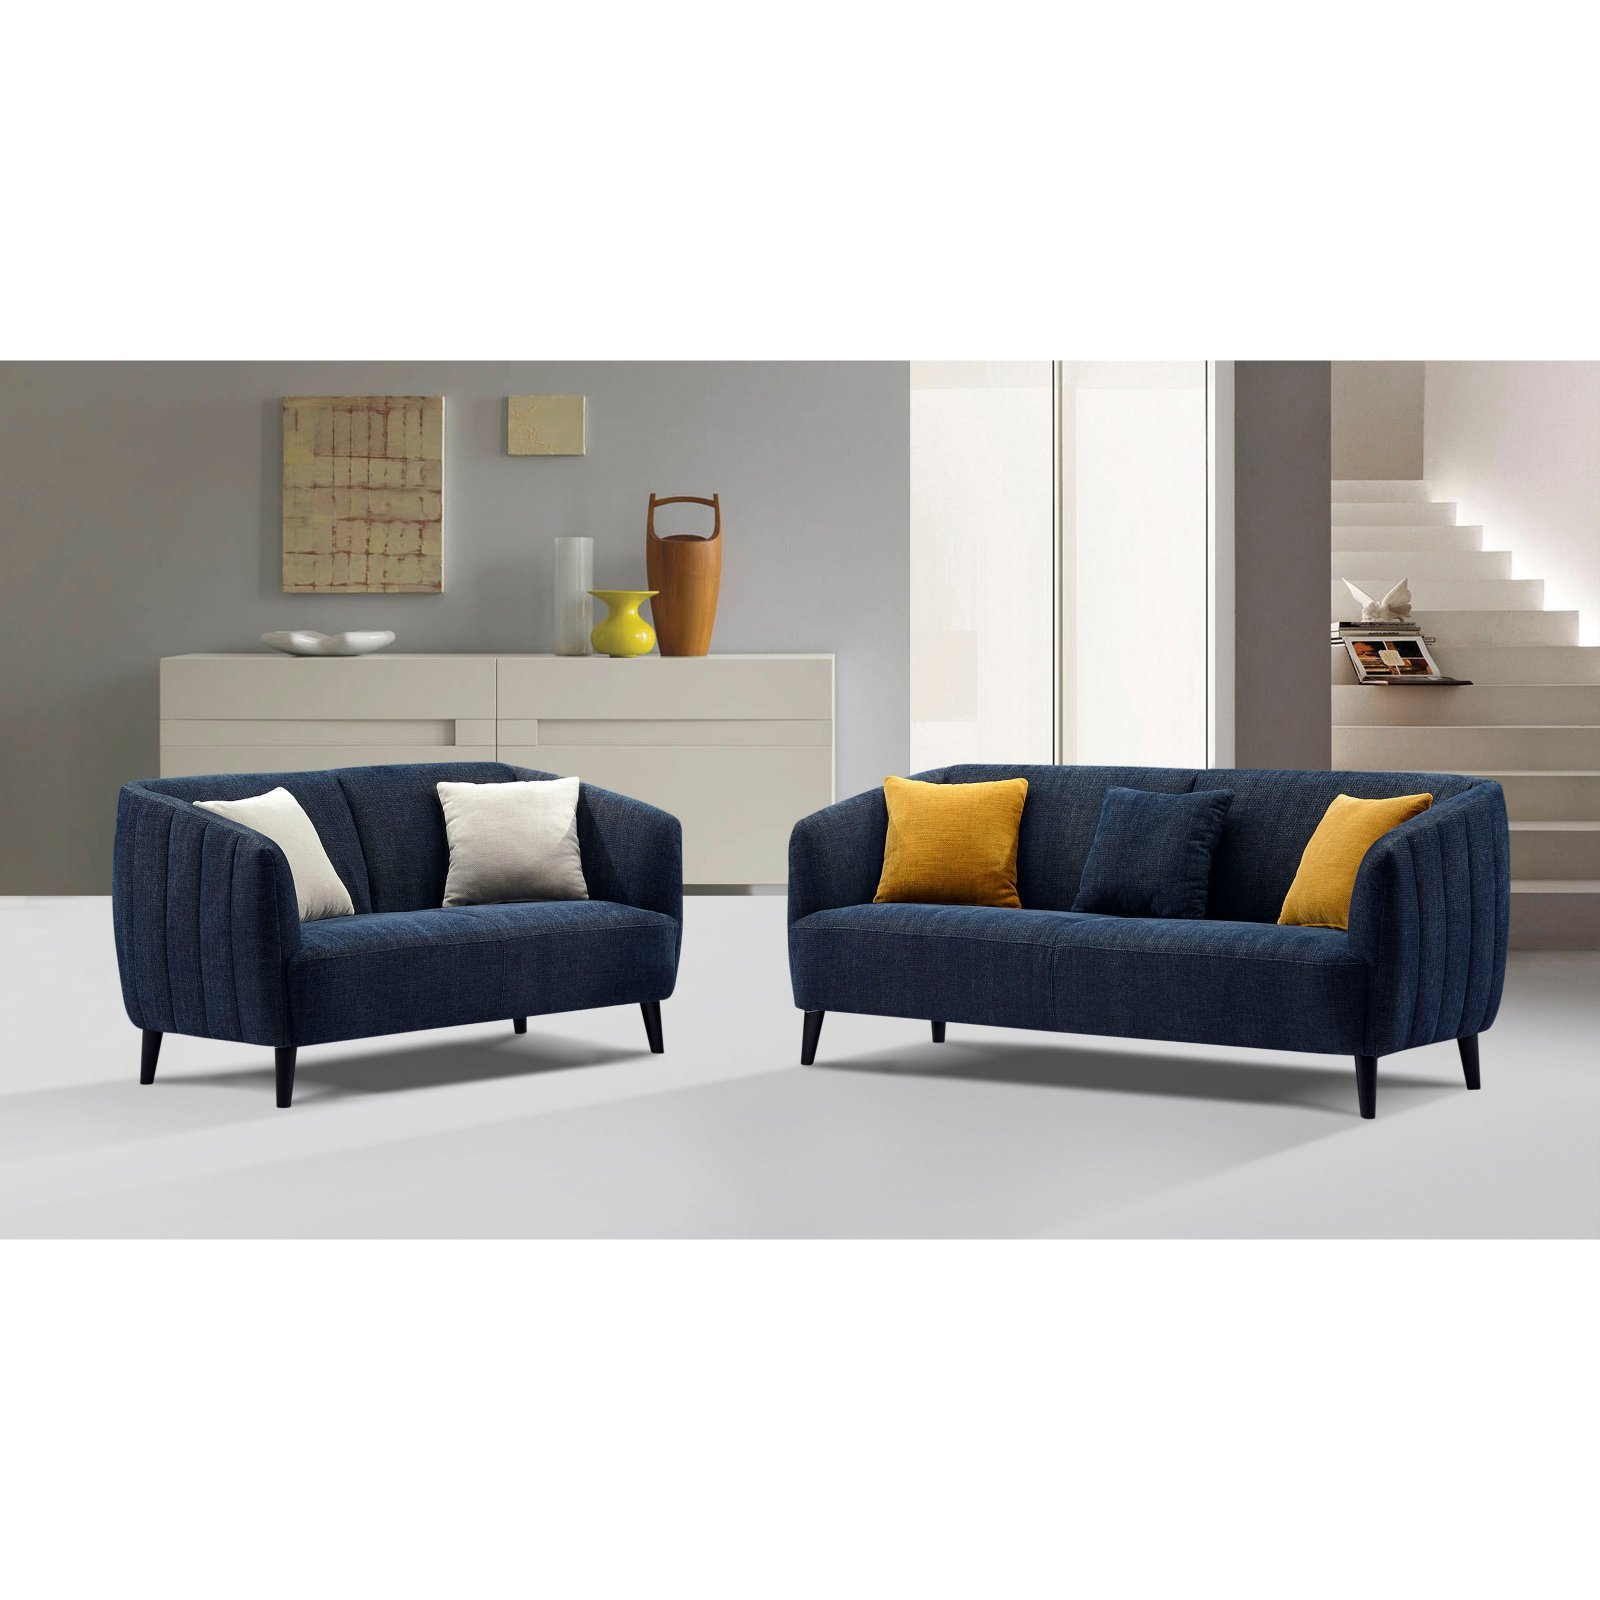 Diamond Sofa DeLuca Fabric Sofa And Loveseat Set   Midnight Blue